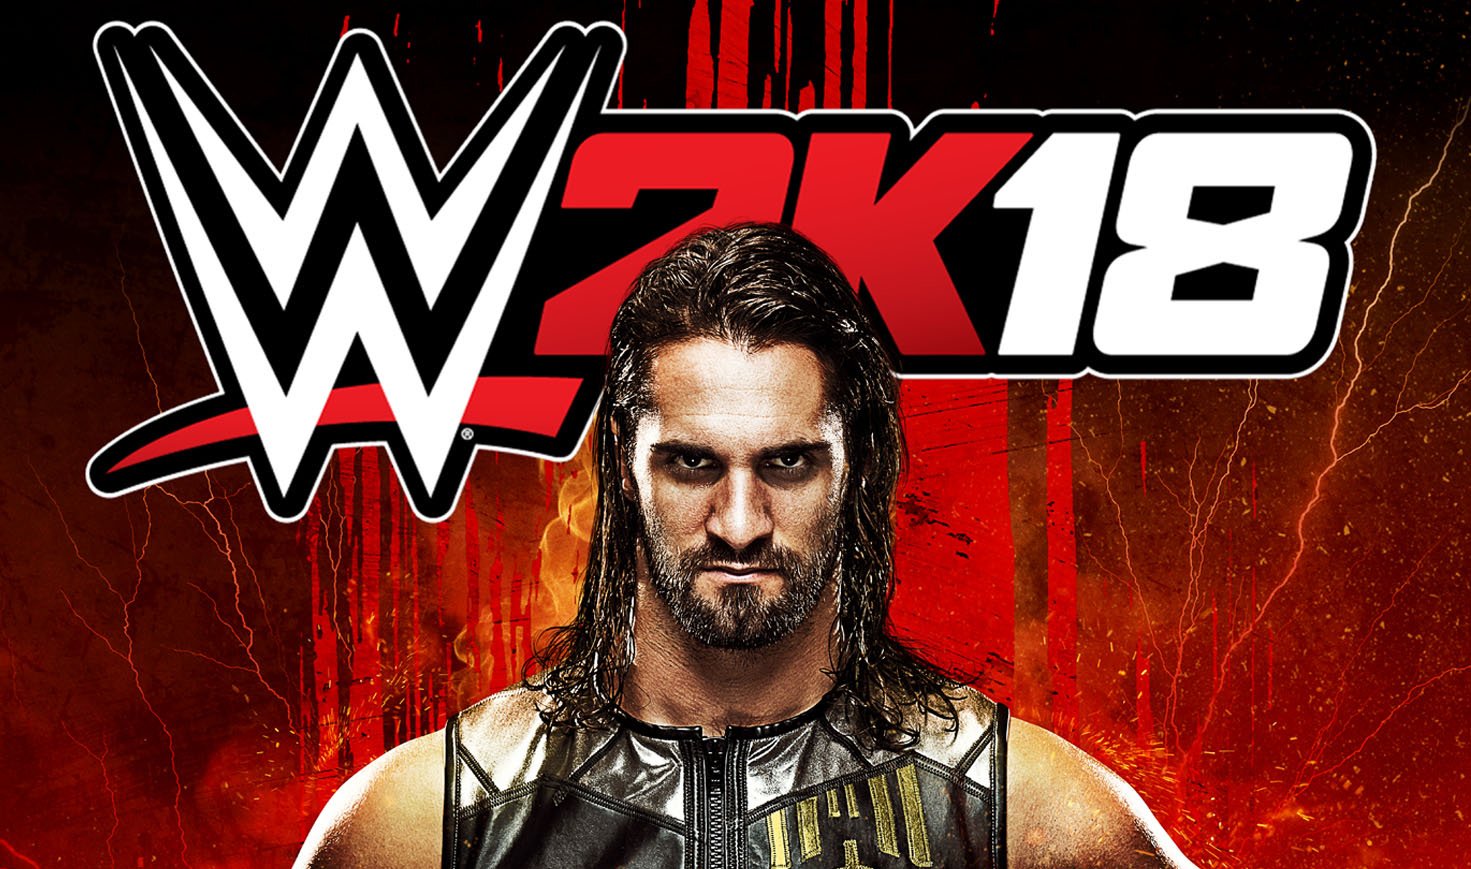 WWE 2K18 Tags Nintendo Back in with a Switch Release